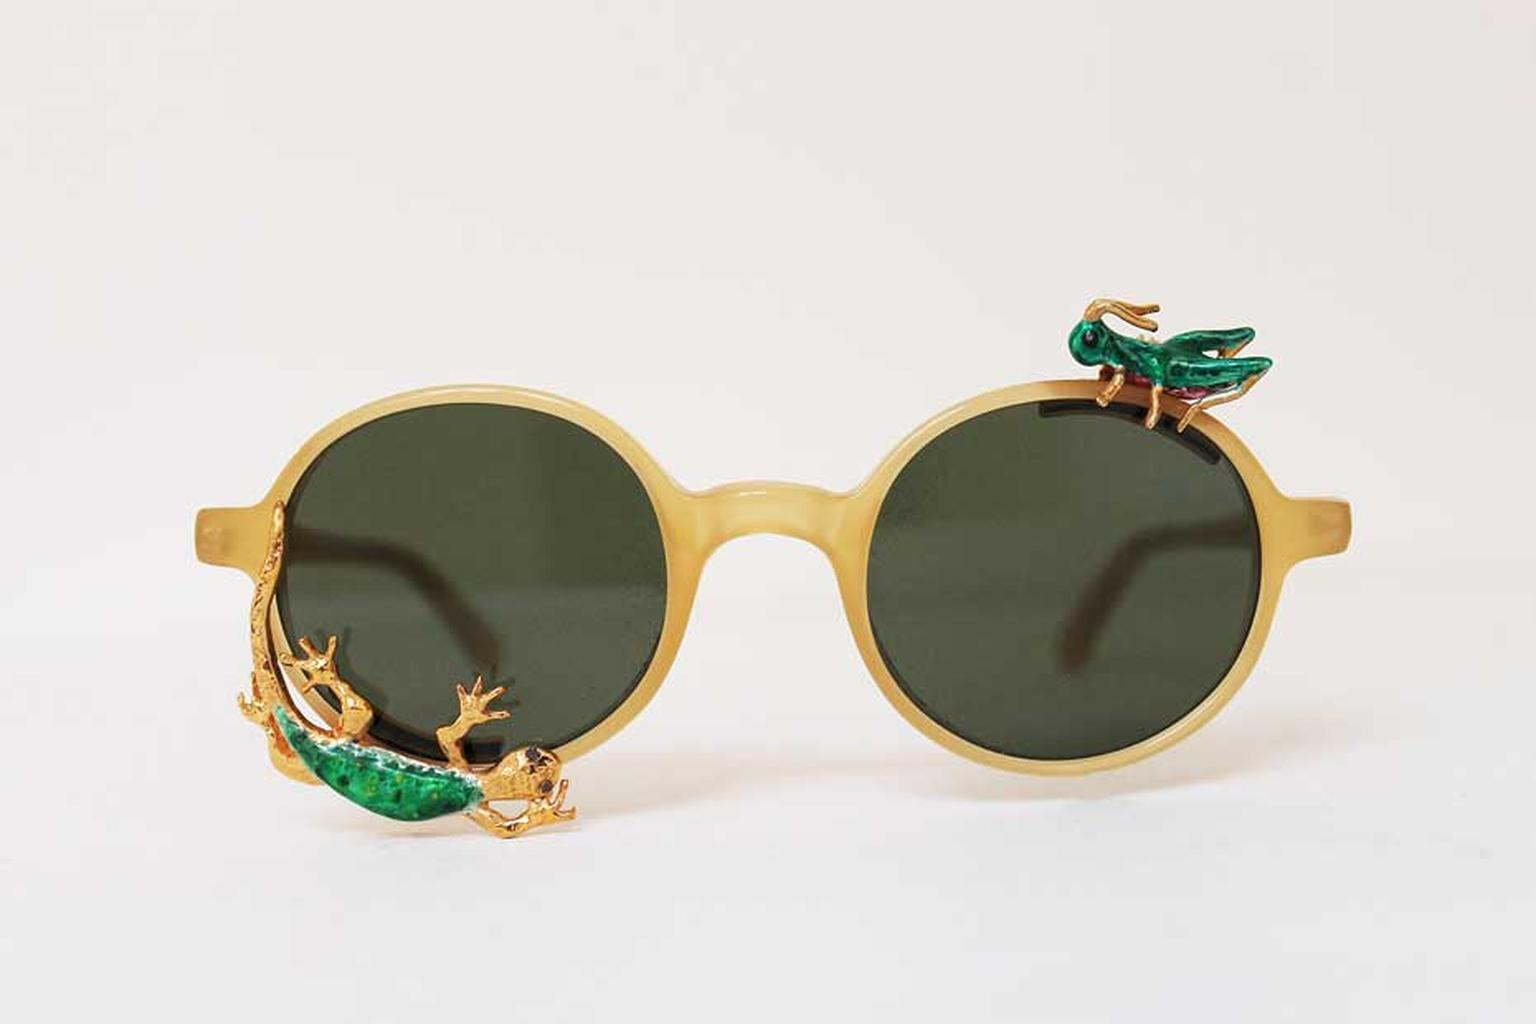 Avish Khebrehzadeh Maskhara with Lizard and Cricket L.G.R limited-edition sunglasses in gold-plated silver and enamel with black diamonds.